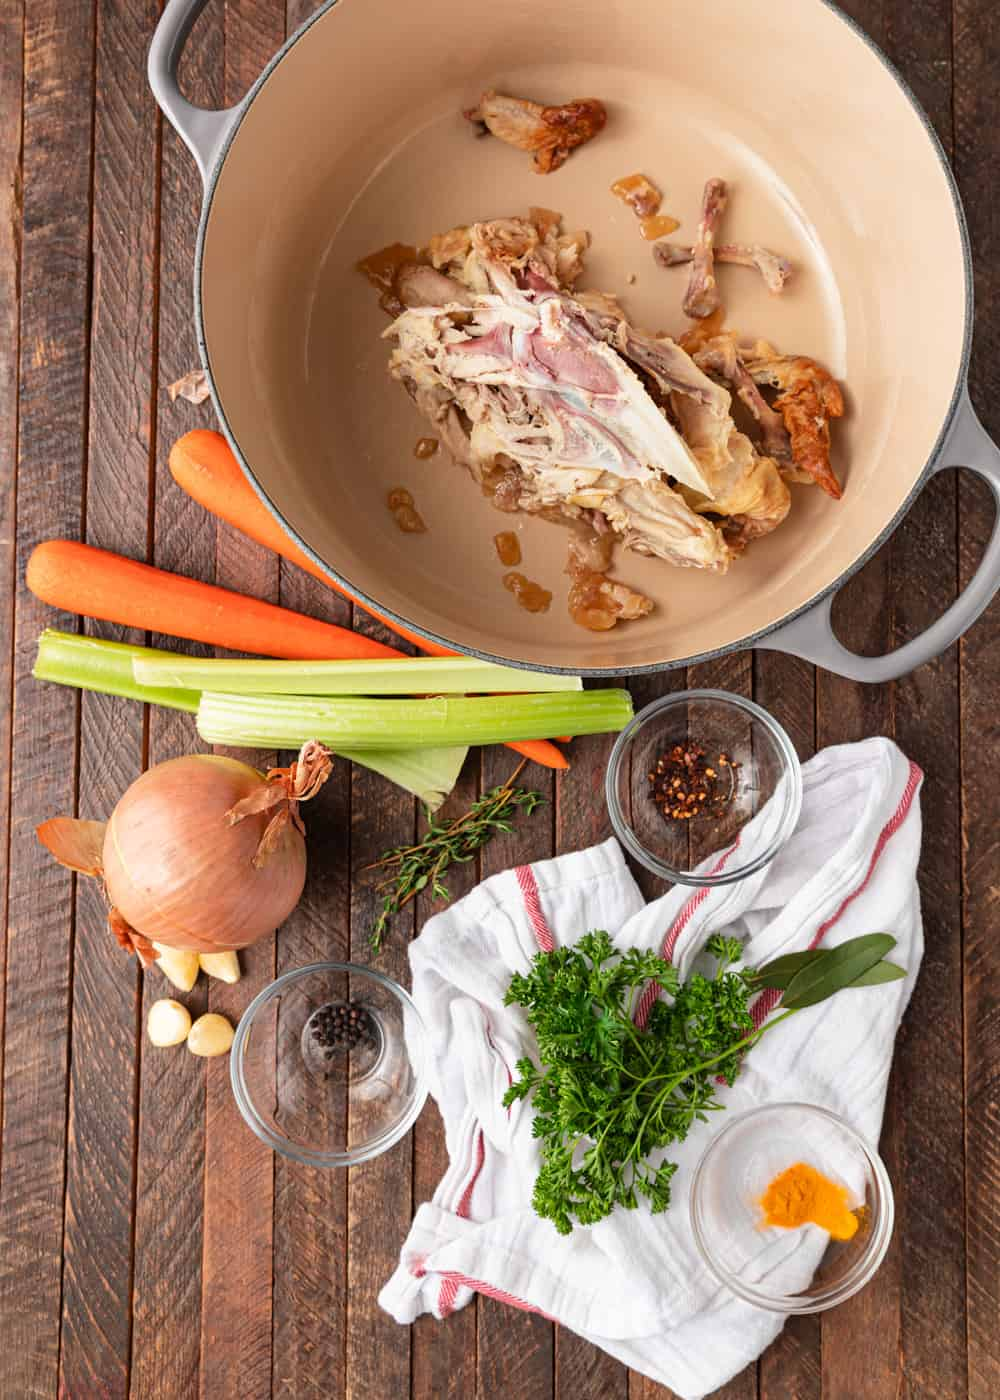 large pot with chicken carcass next to carrots, celery, onion, and herbs